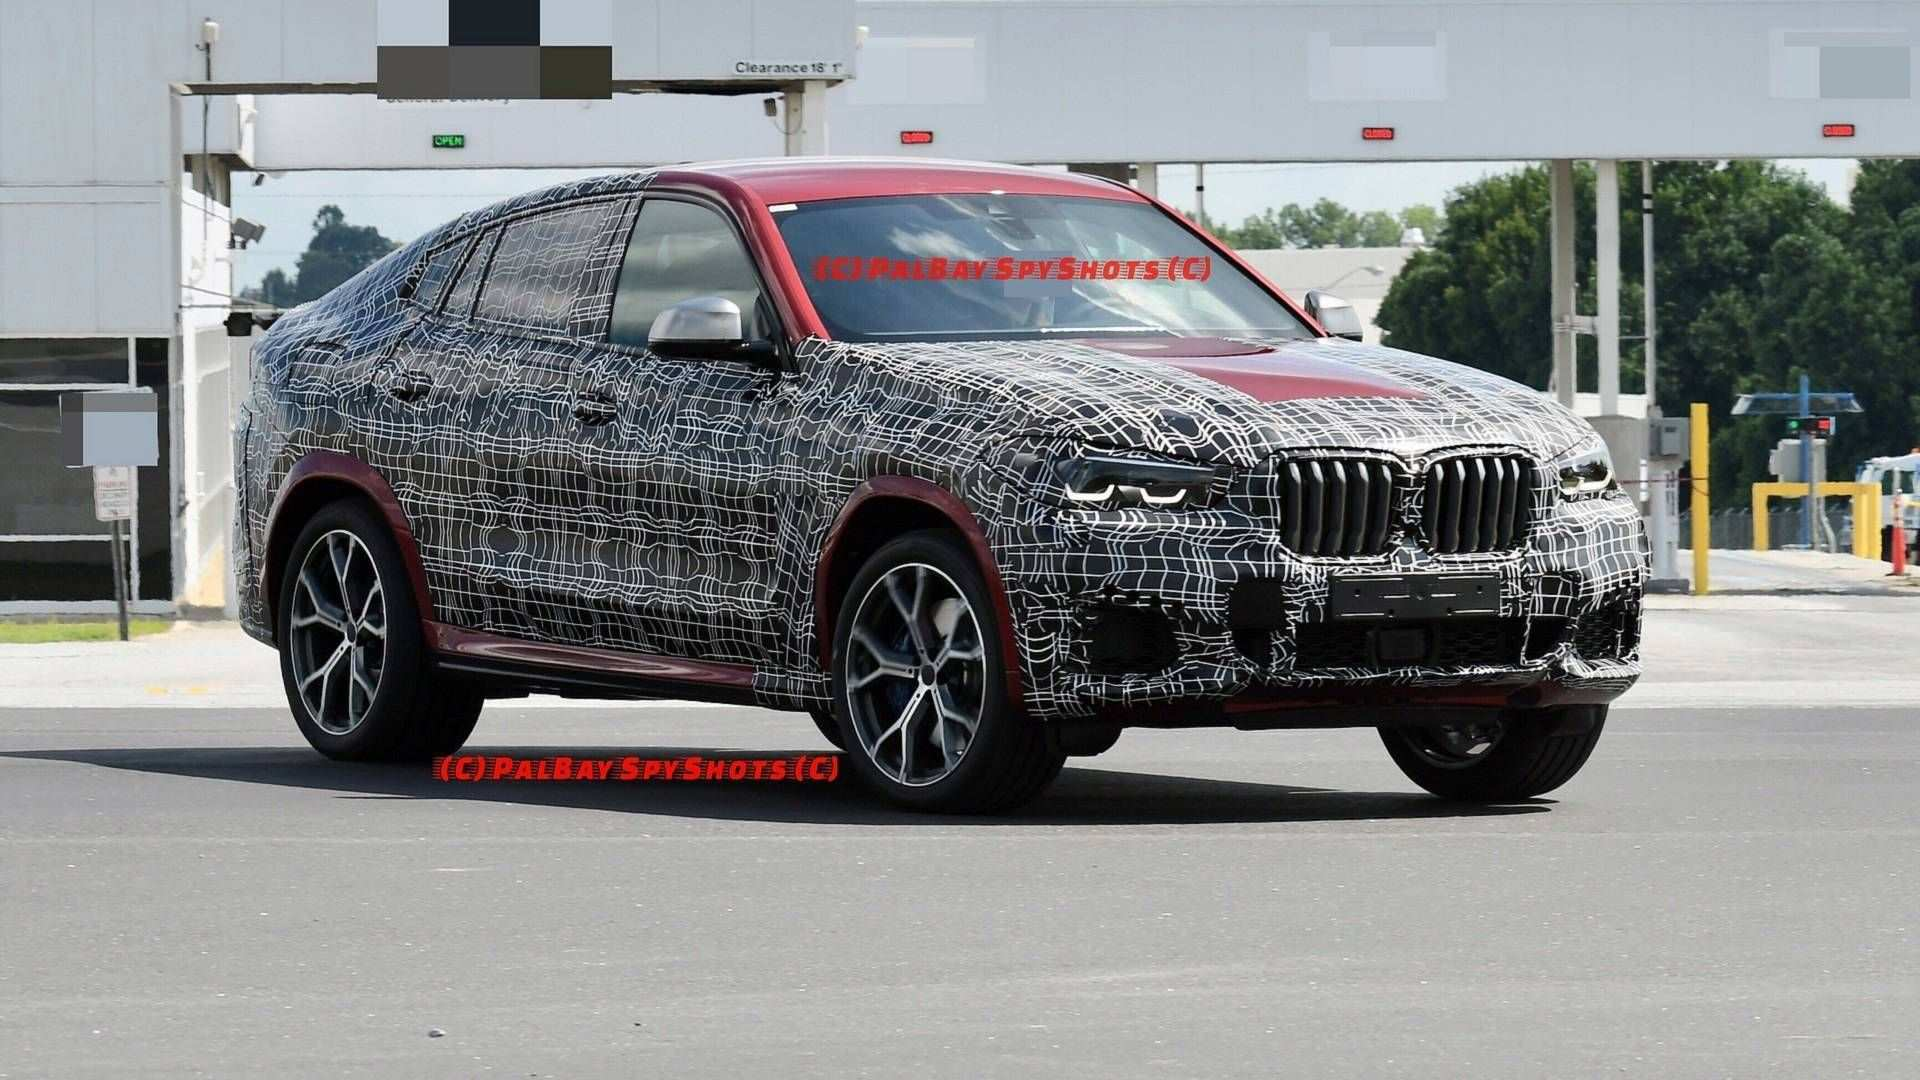 13 New 2020 BMW Hd Exterior Date Photos by 2020 BMW Hd Exterior Date